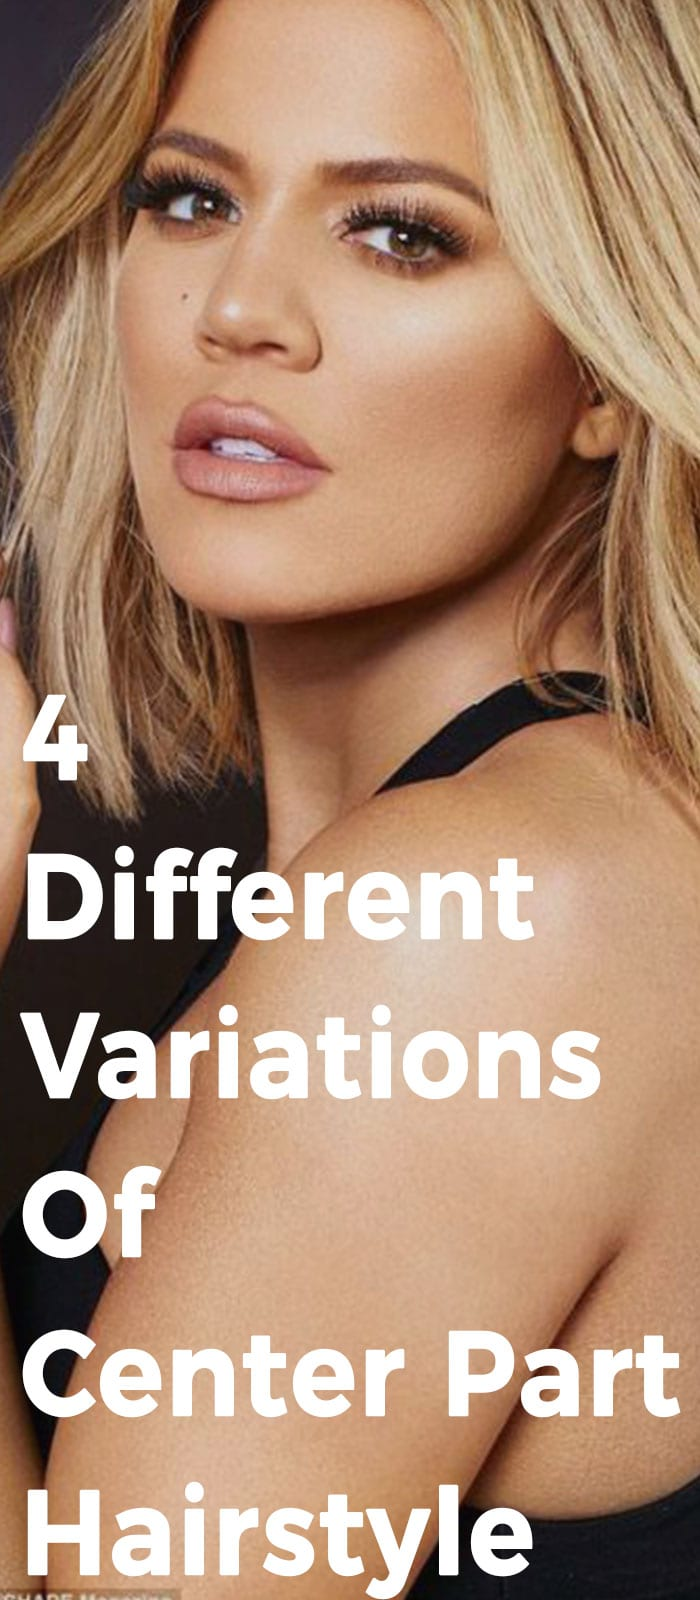 4 Different Variations Of Center Part Hairstyle